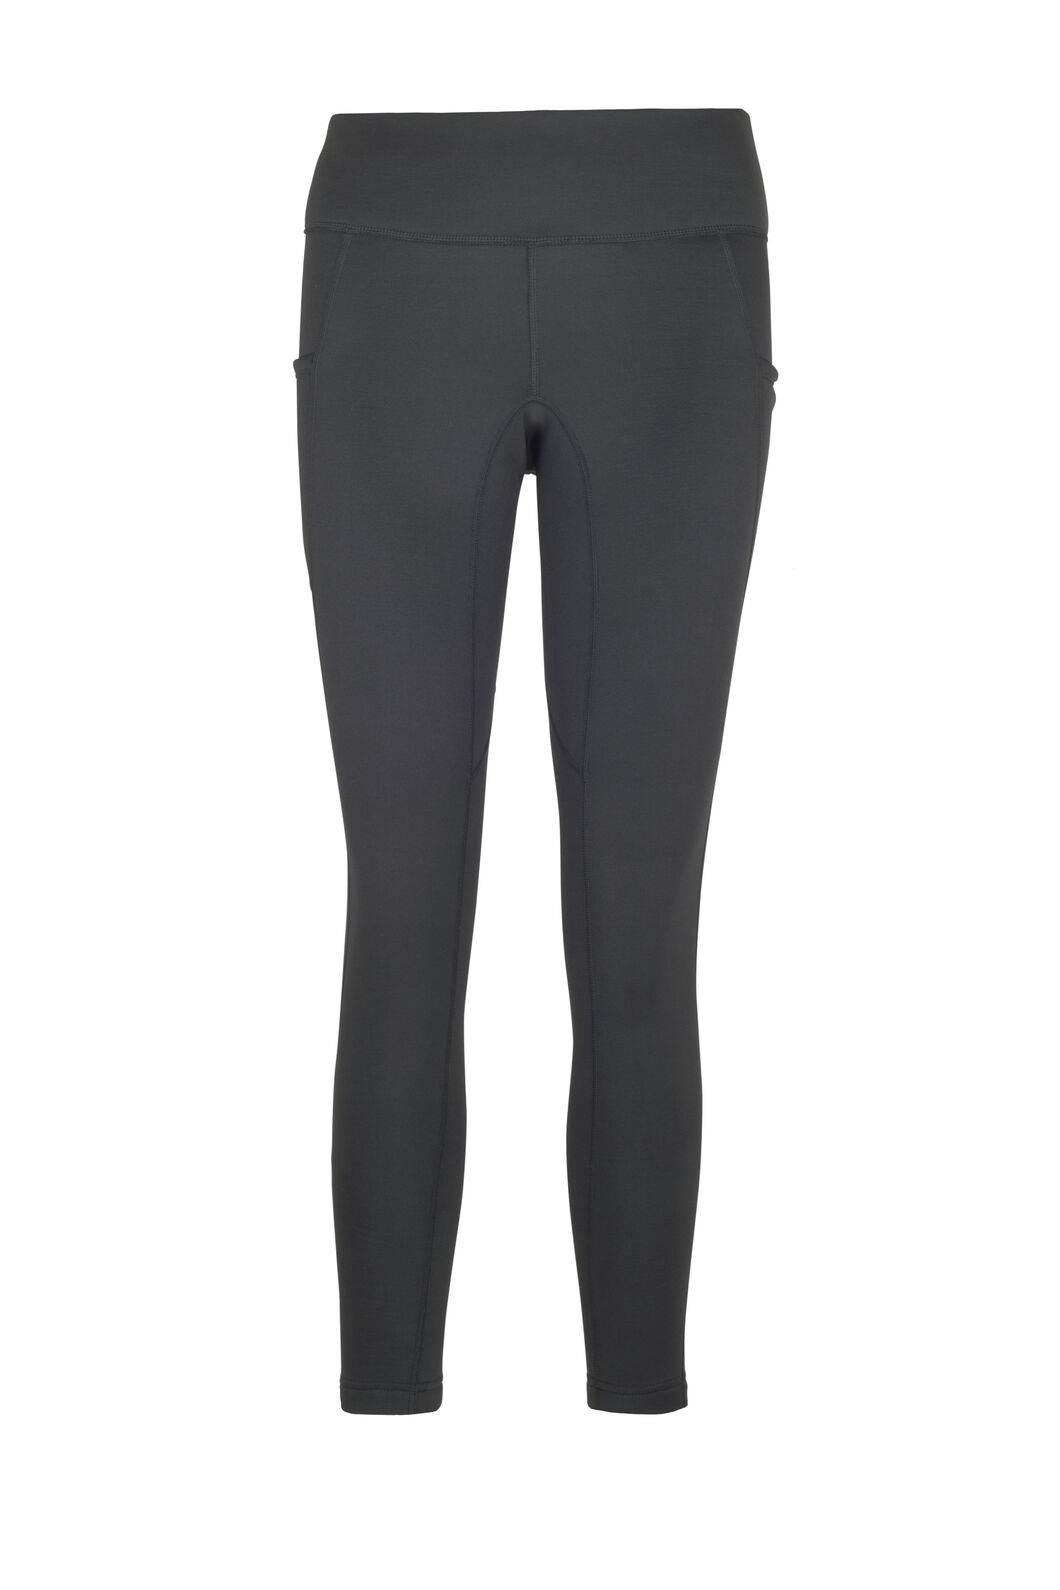 Macpac Traverse Tights - Women's, Black, hi-res